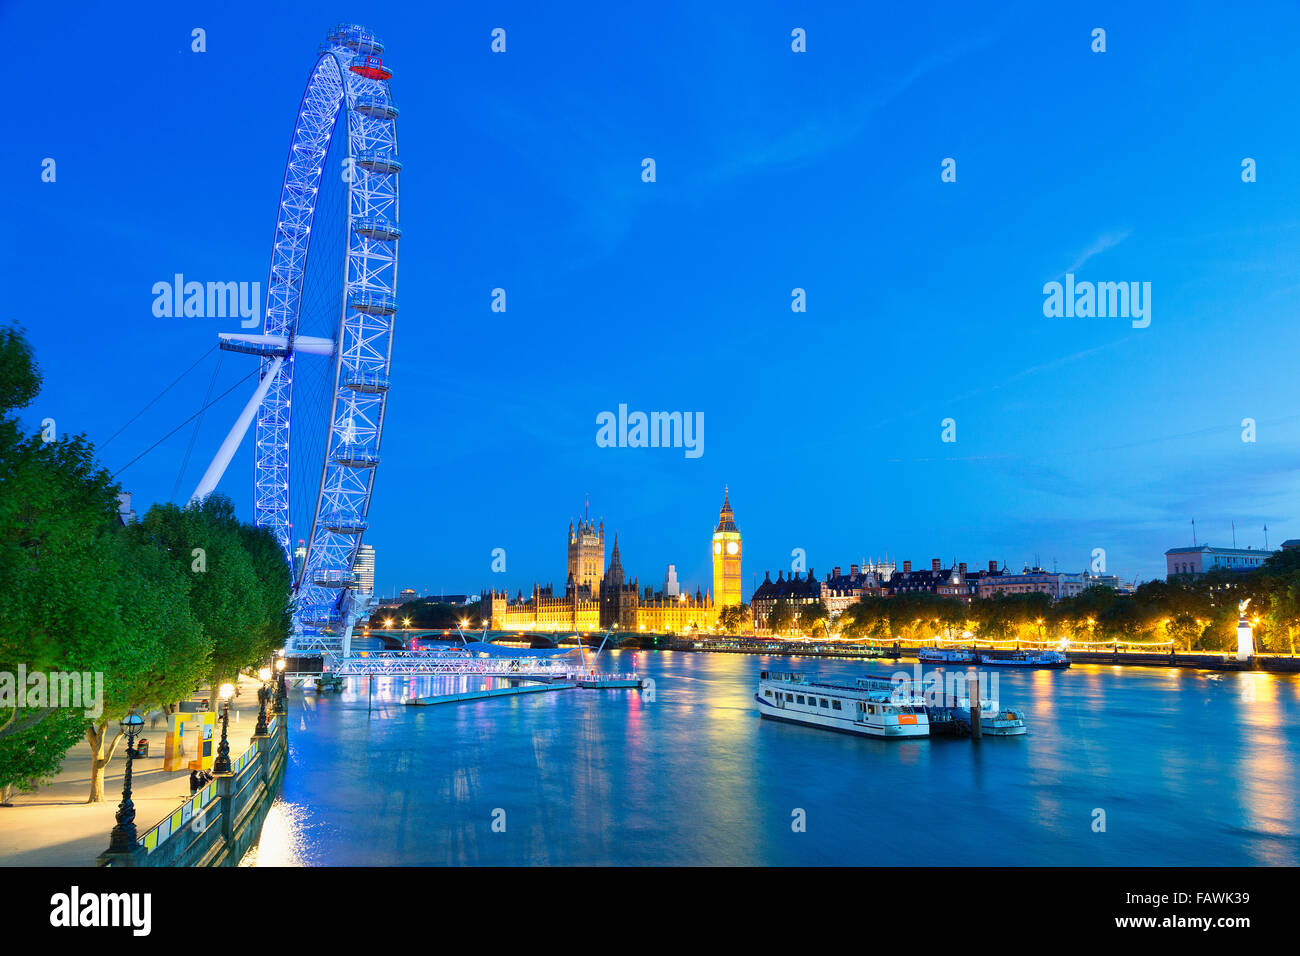 Cityscape of London, view on Parliament houses and millennium wheel - Stock Image